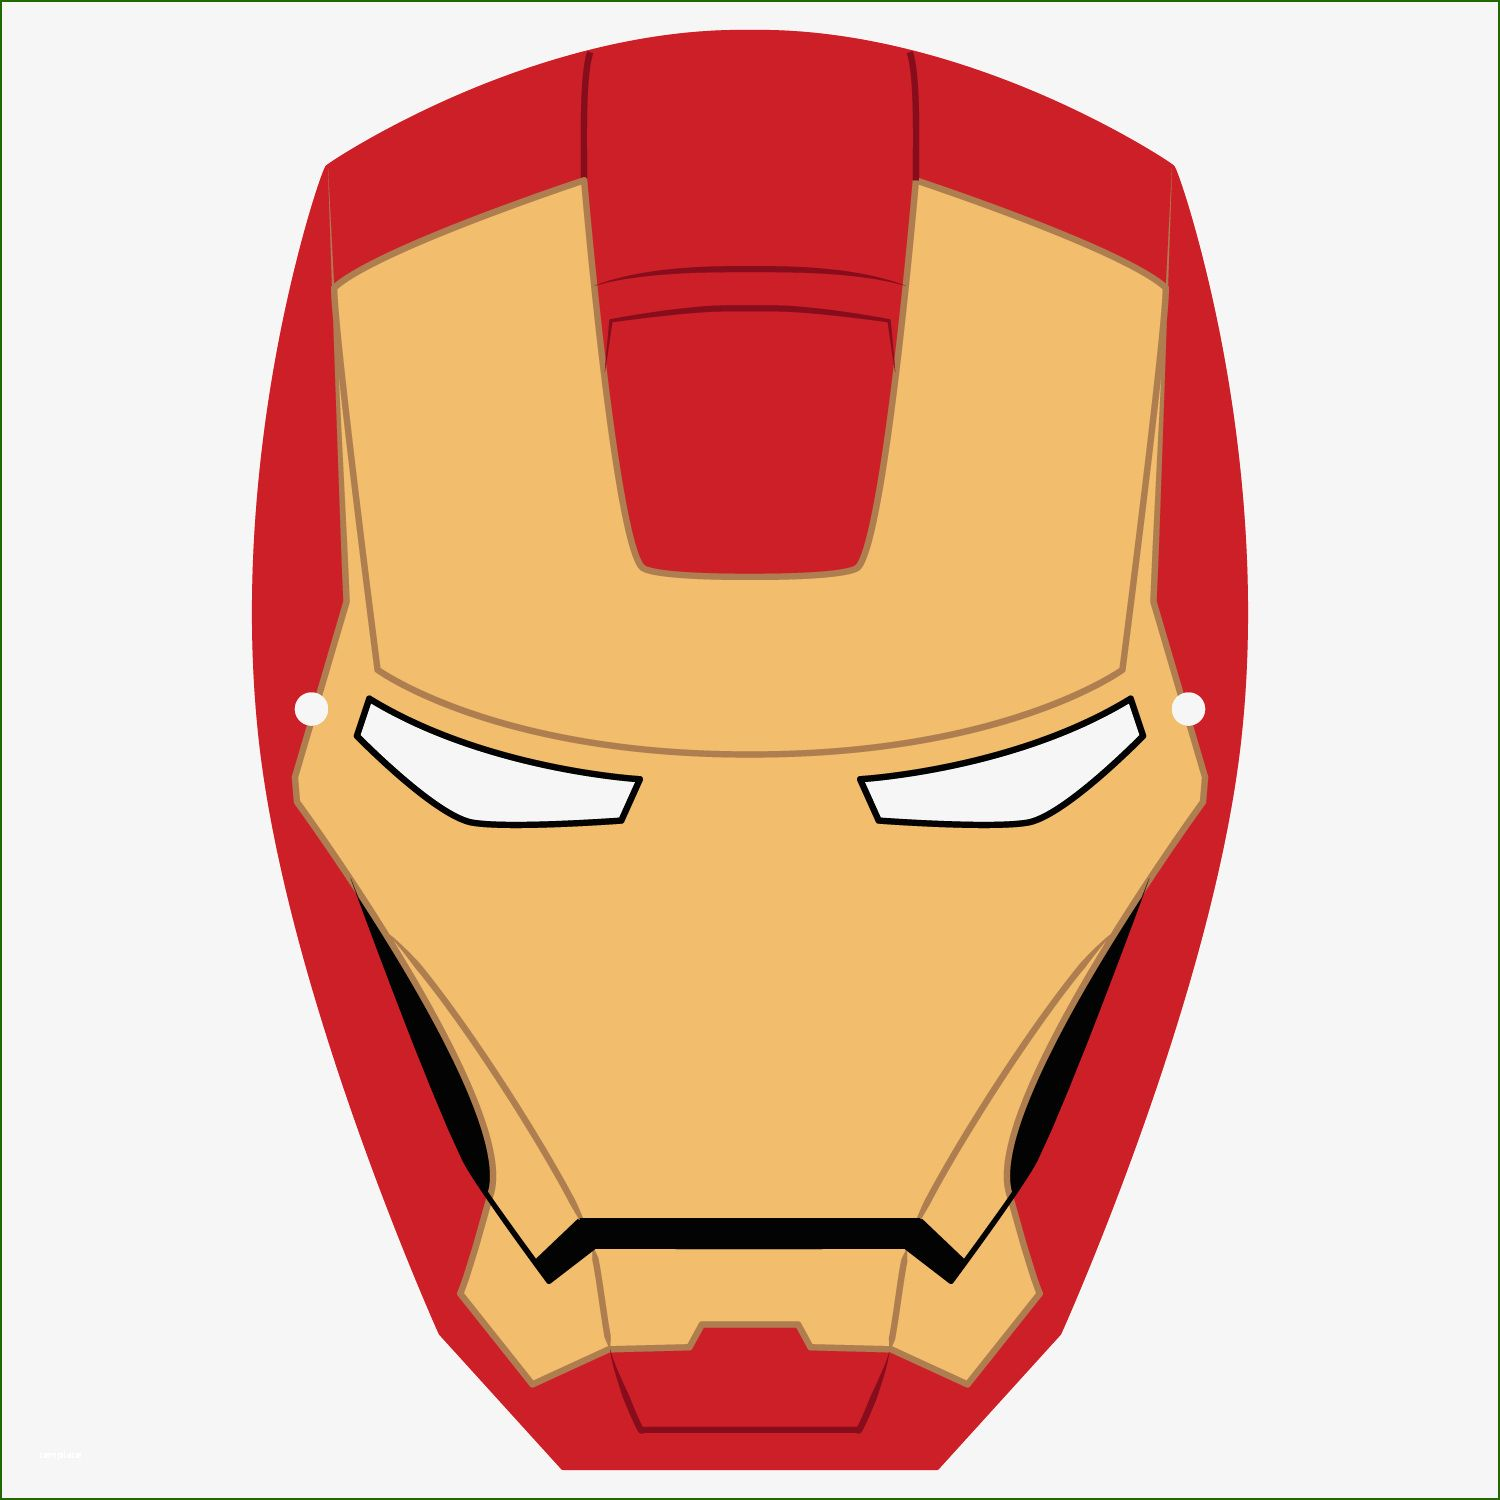 16 Marvelous Iron Man Mask Template 2020 Iron Man Mask Ironman Mask Mask Template